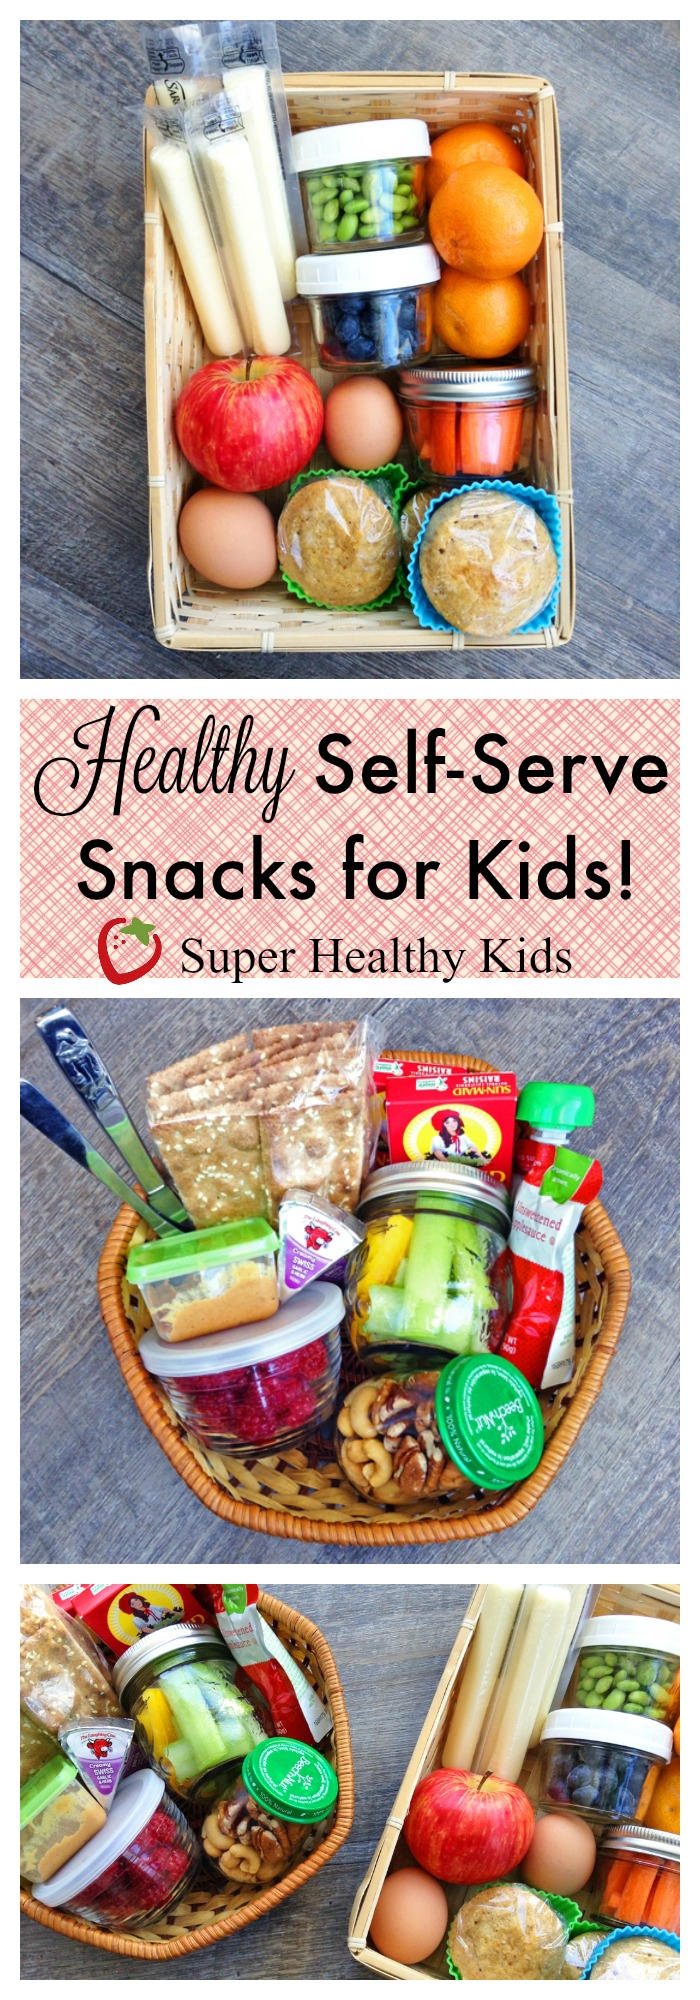 Healthy Self-Serve Snack Box for Kids. Helping kids to be independent with a healthy self-serve snack box! http://www.superhealthykids.com/kids-ready-self-serve-snack-box/